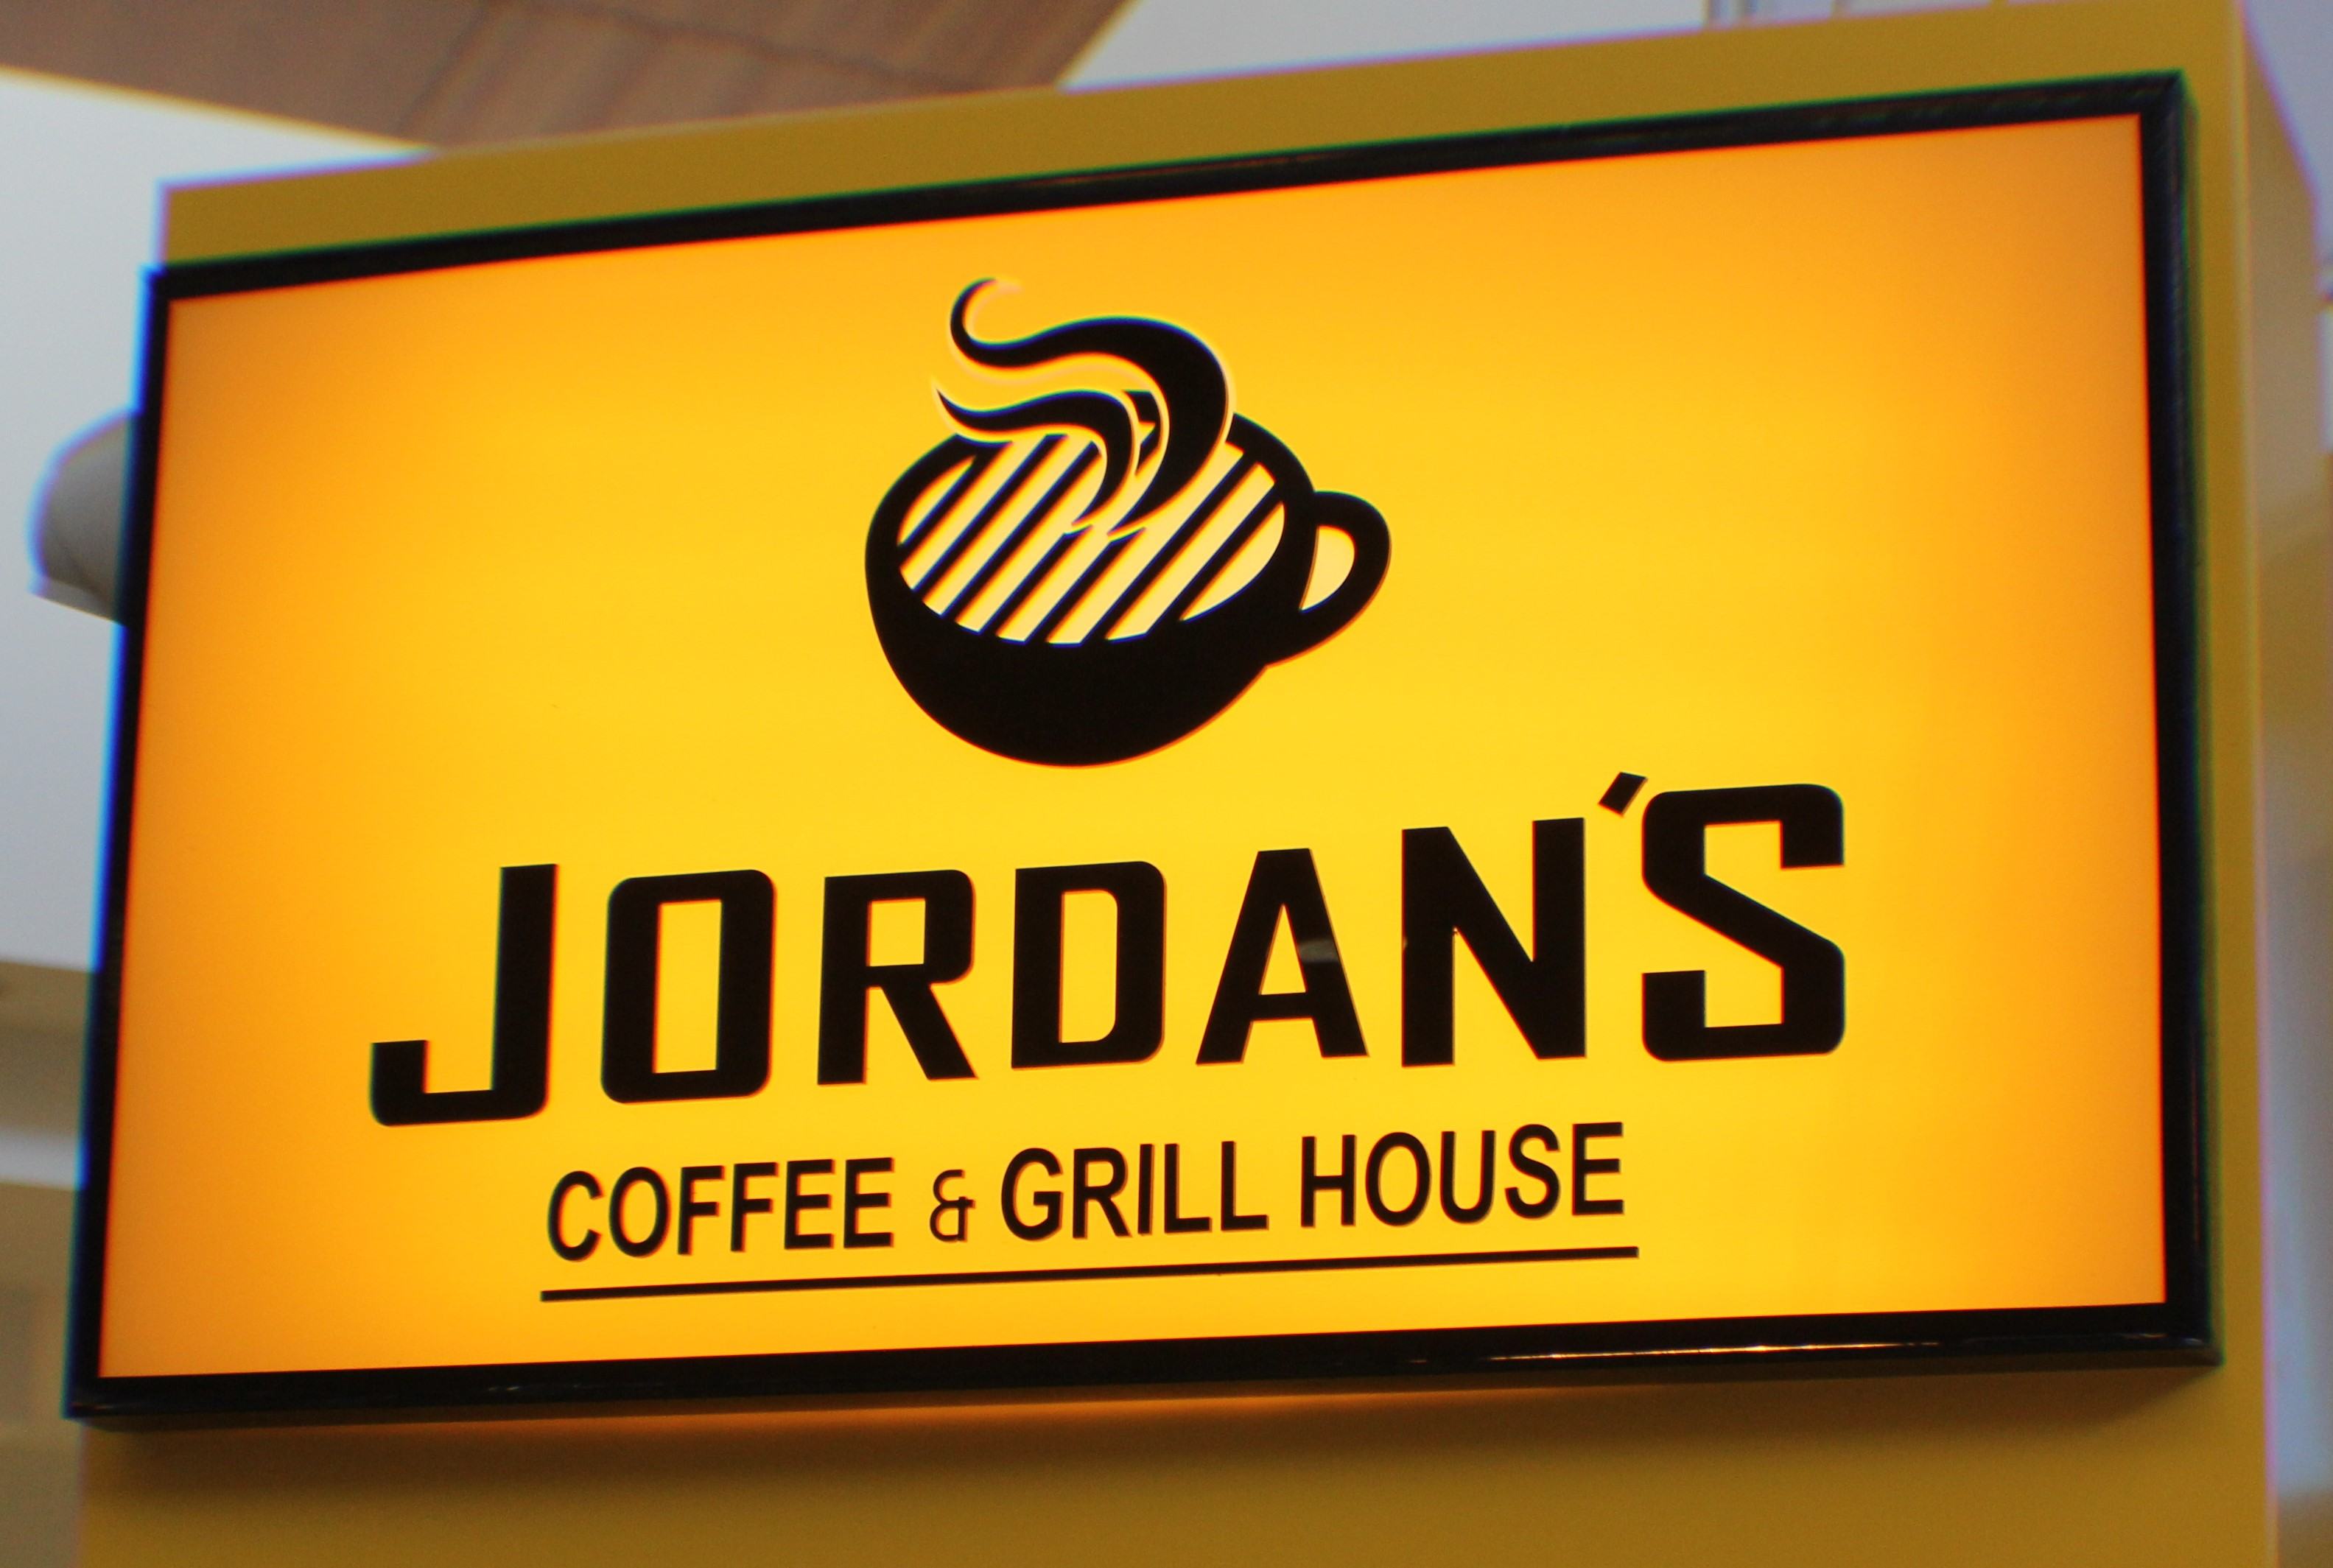 Jordans Coffee and Grill House Windsor Marketplace (1)